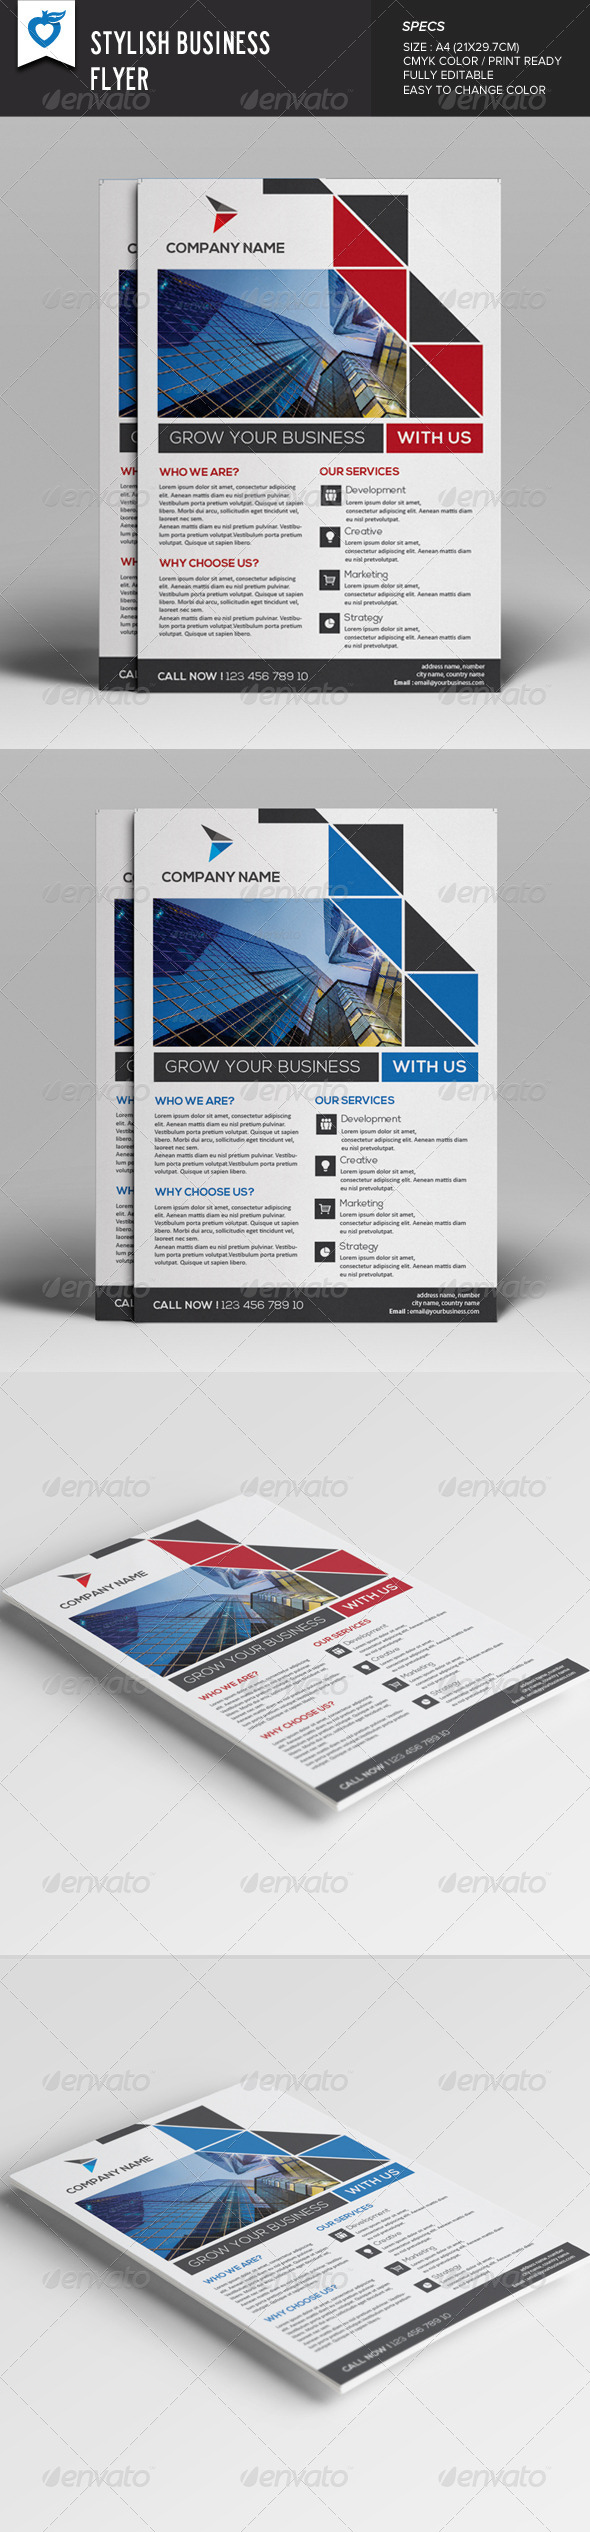 GraphicRiver Stylish Business Flyer 8027052